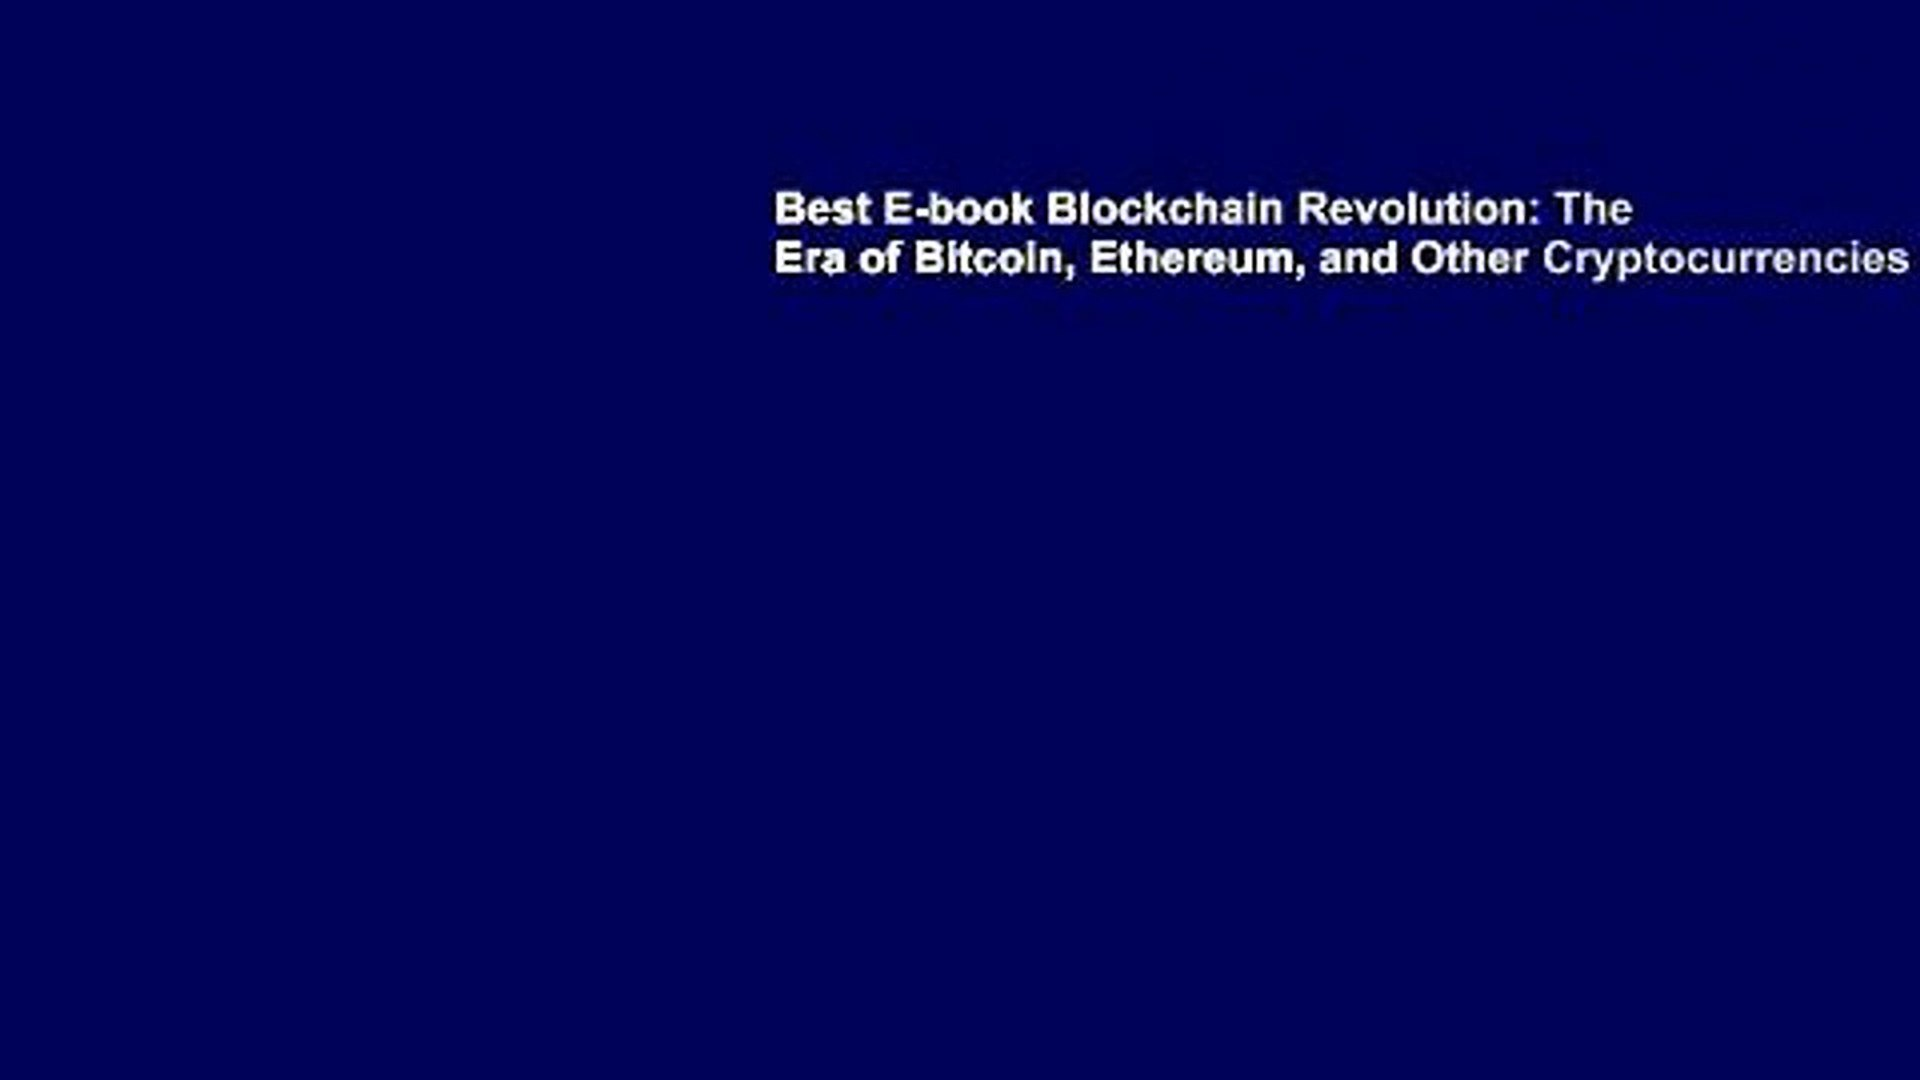 Best E-book Blockchain Revolution: The Era of Bitcoin, Ethereum, and Other Cryptocurrencies